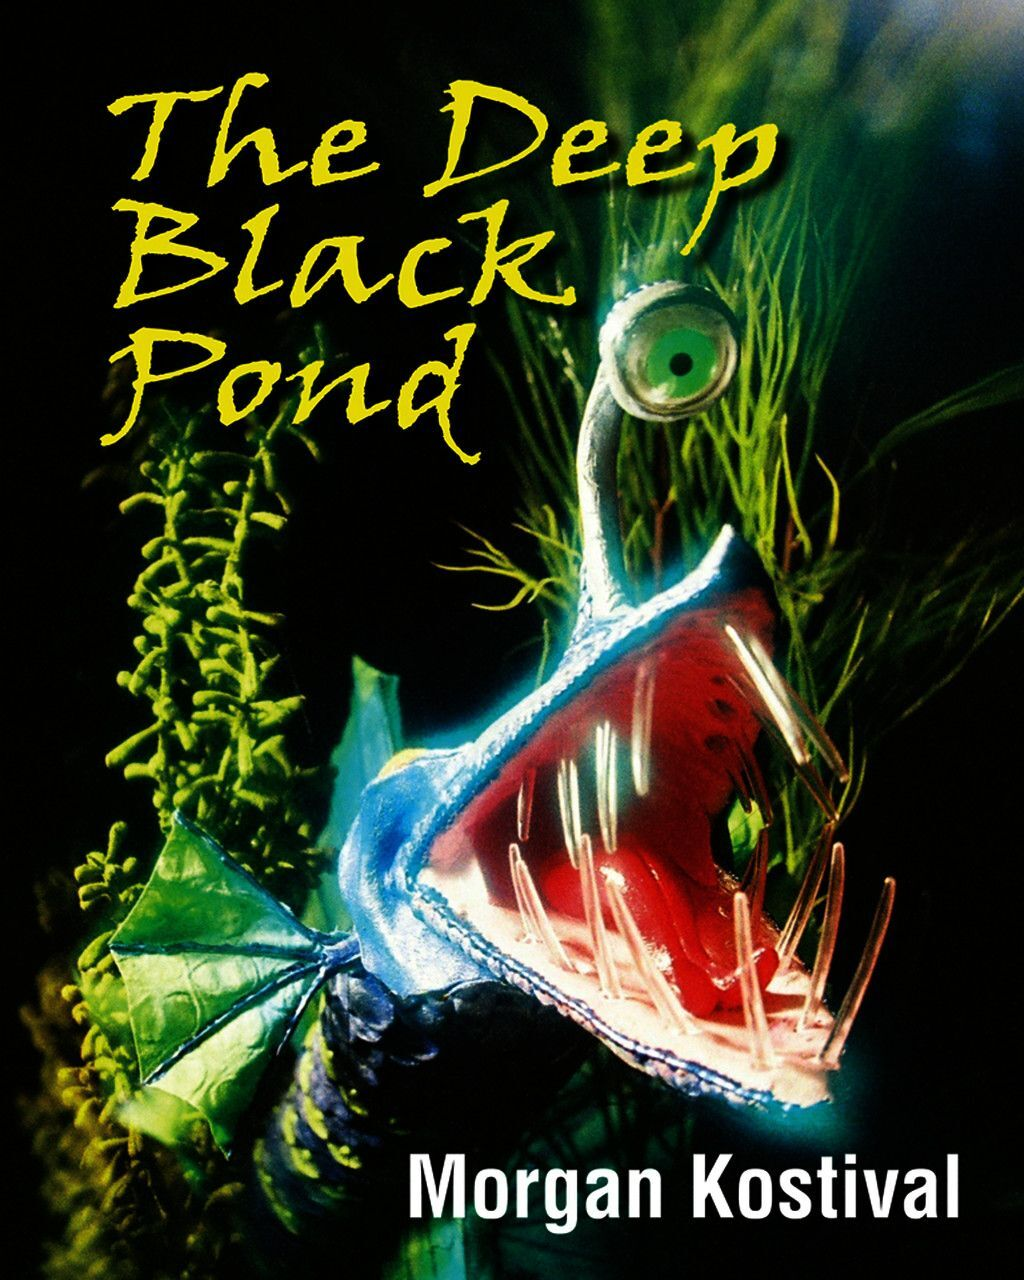 The Deep Black Pond